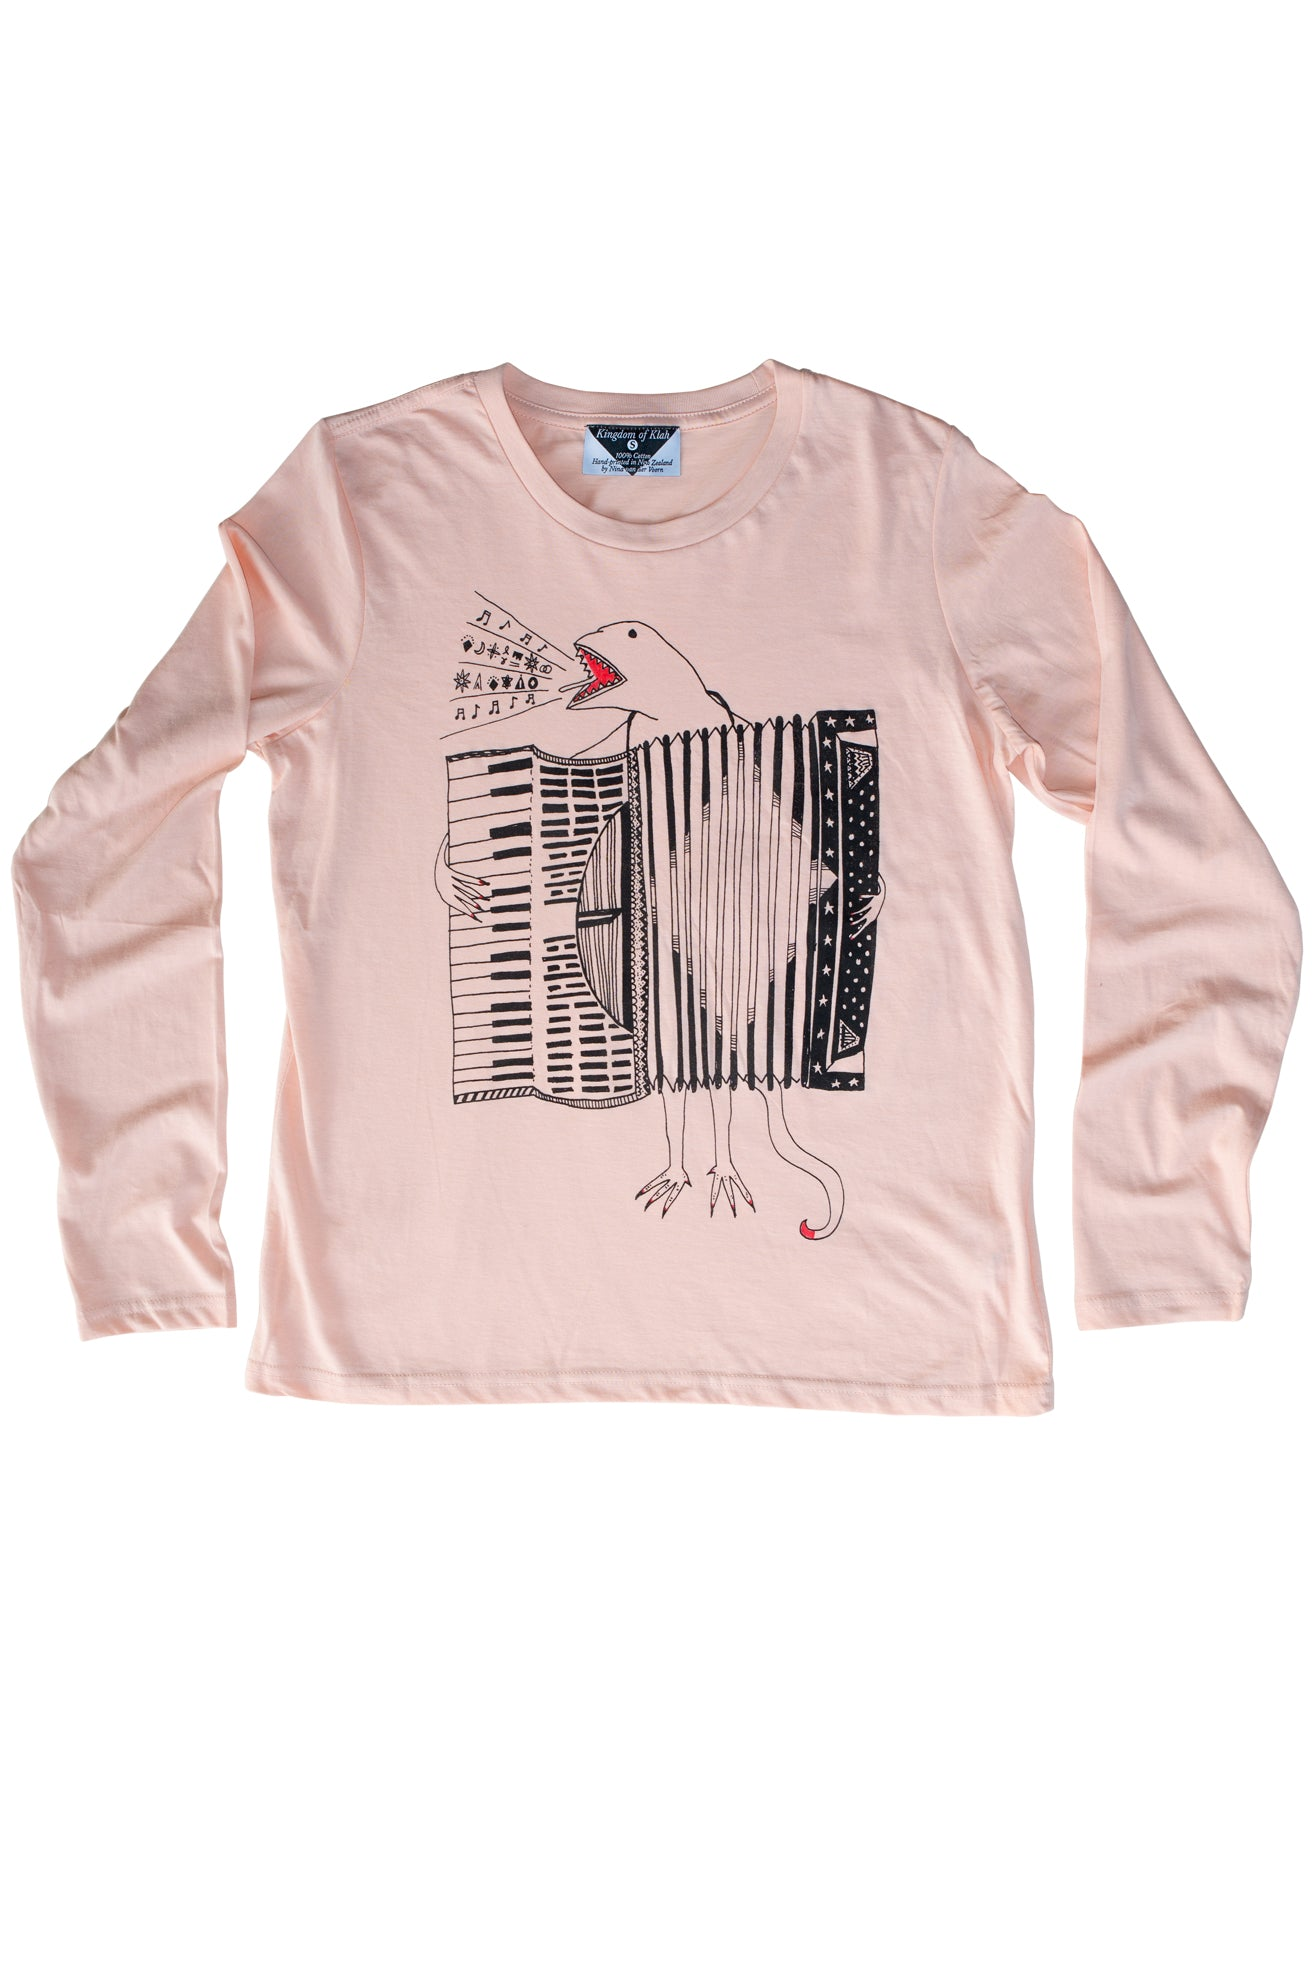 The Accordion of Unexpected Fortunes Women's Longsleeve, Peachy Pink